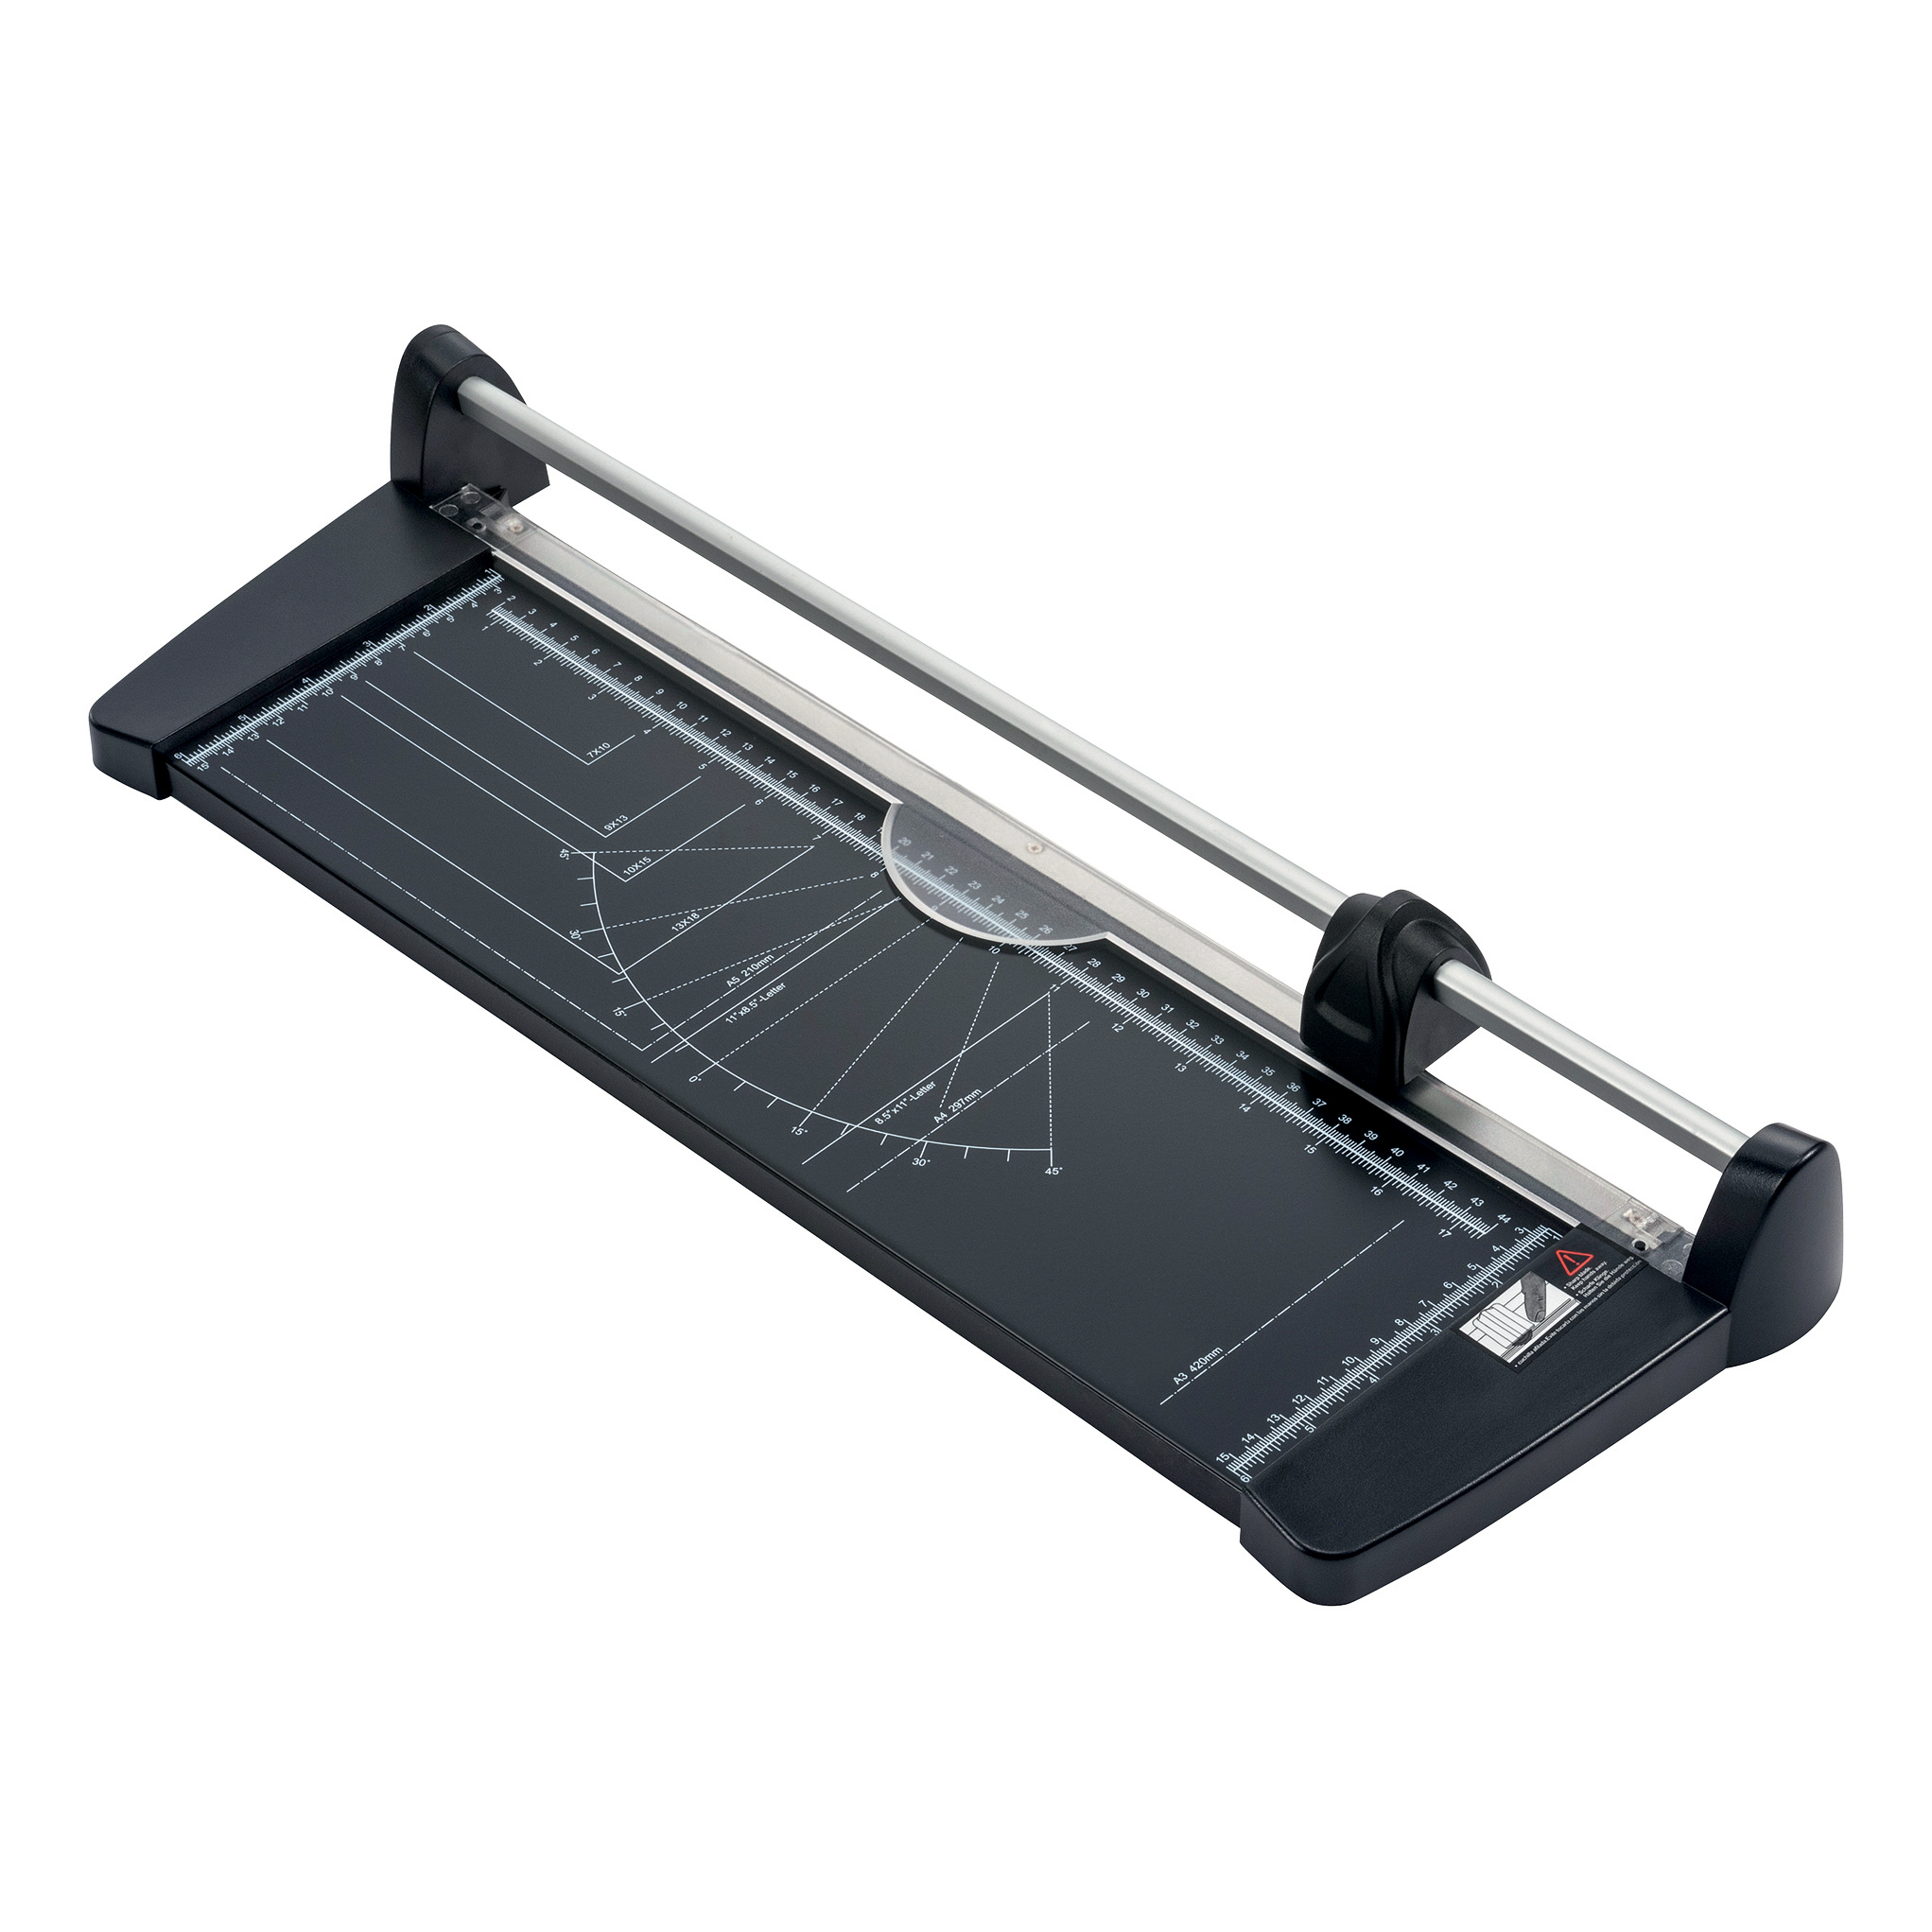 Trimmers 5 Star Office Personal Trimmer 10 Sheet Capacity A3 Cutting Length 460mm Cutting Table Size 460x157mm